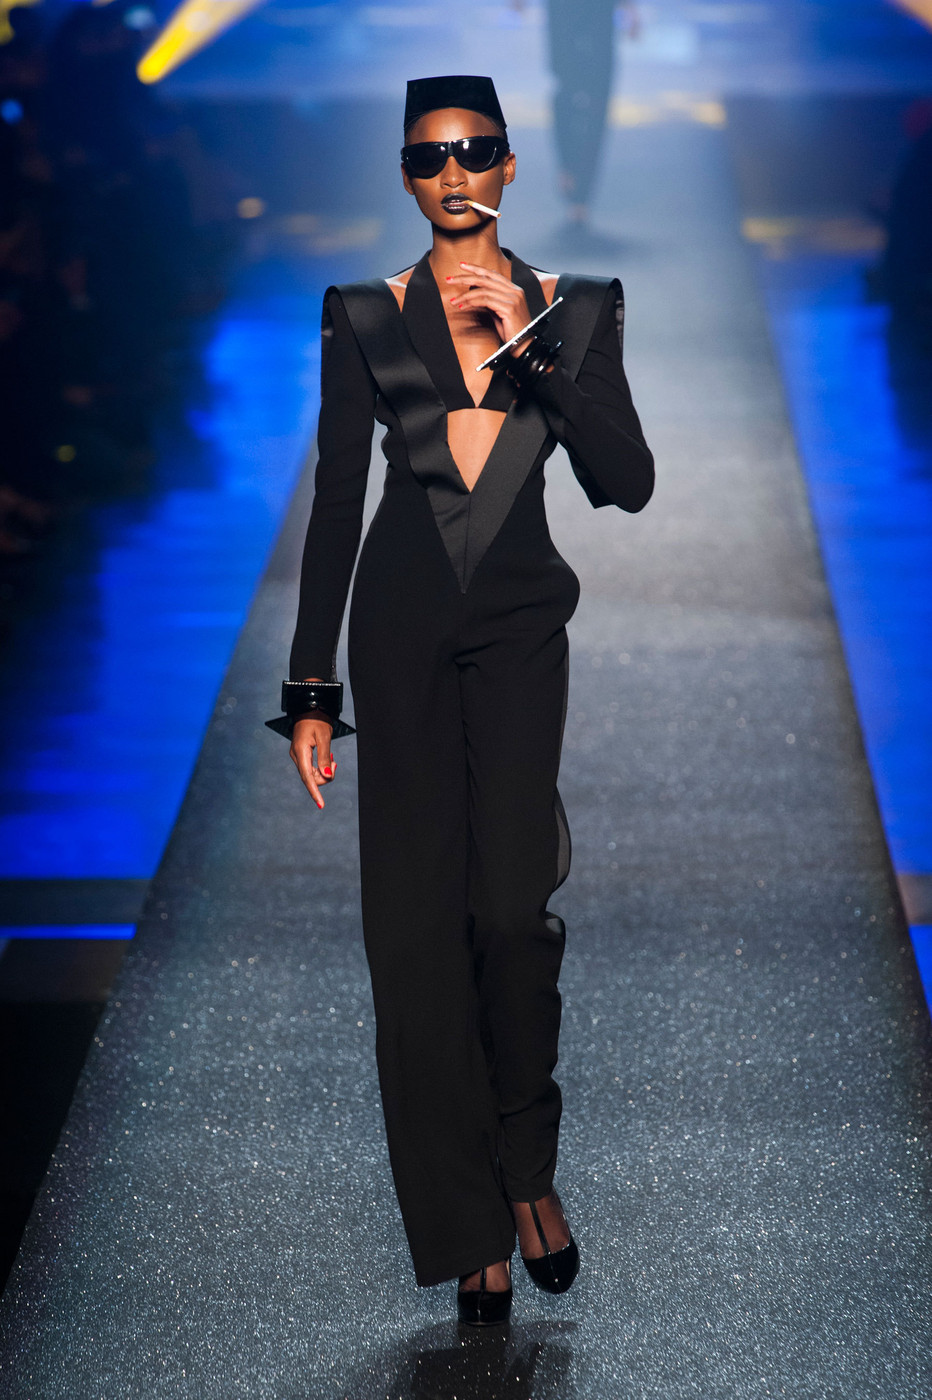 jean paul gaultier at paris fashion week spring 2013. Black Bedroom Furniture Sets. Home Design Ideas